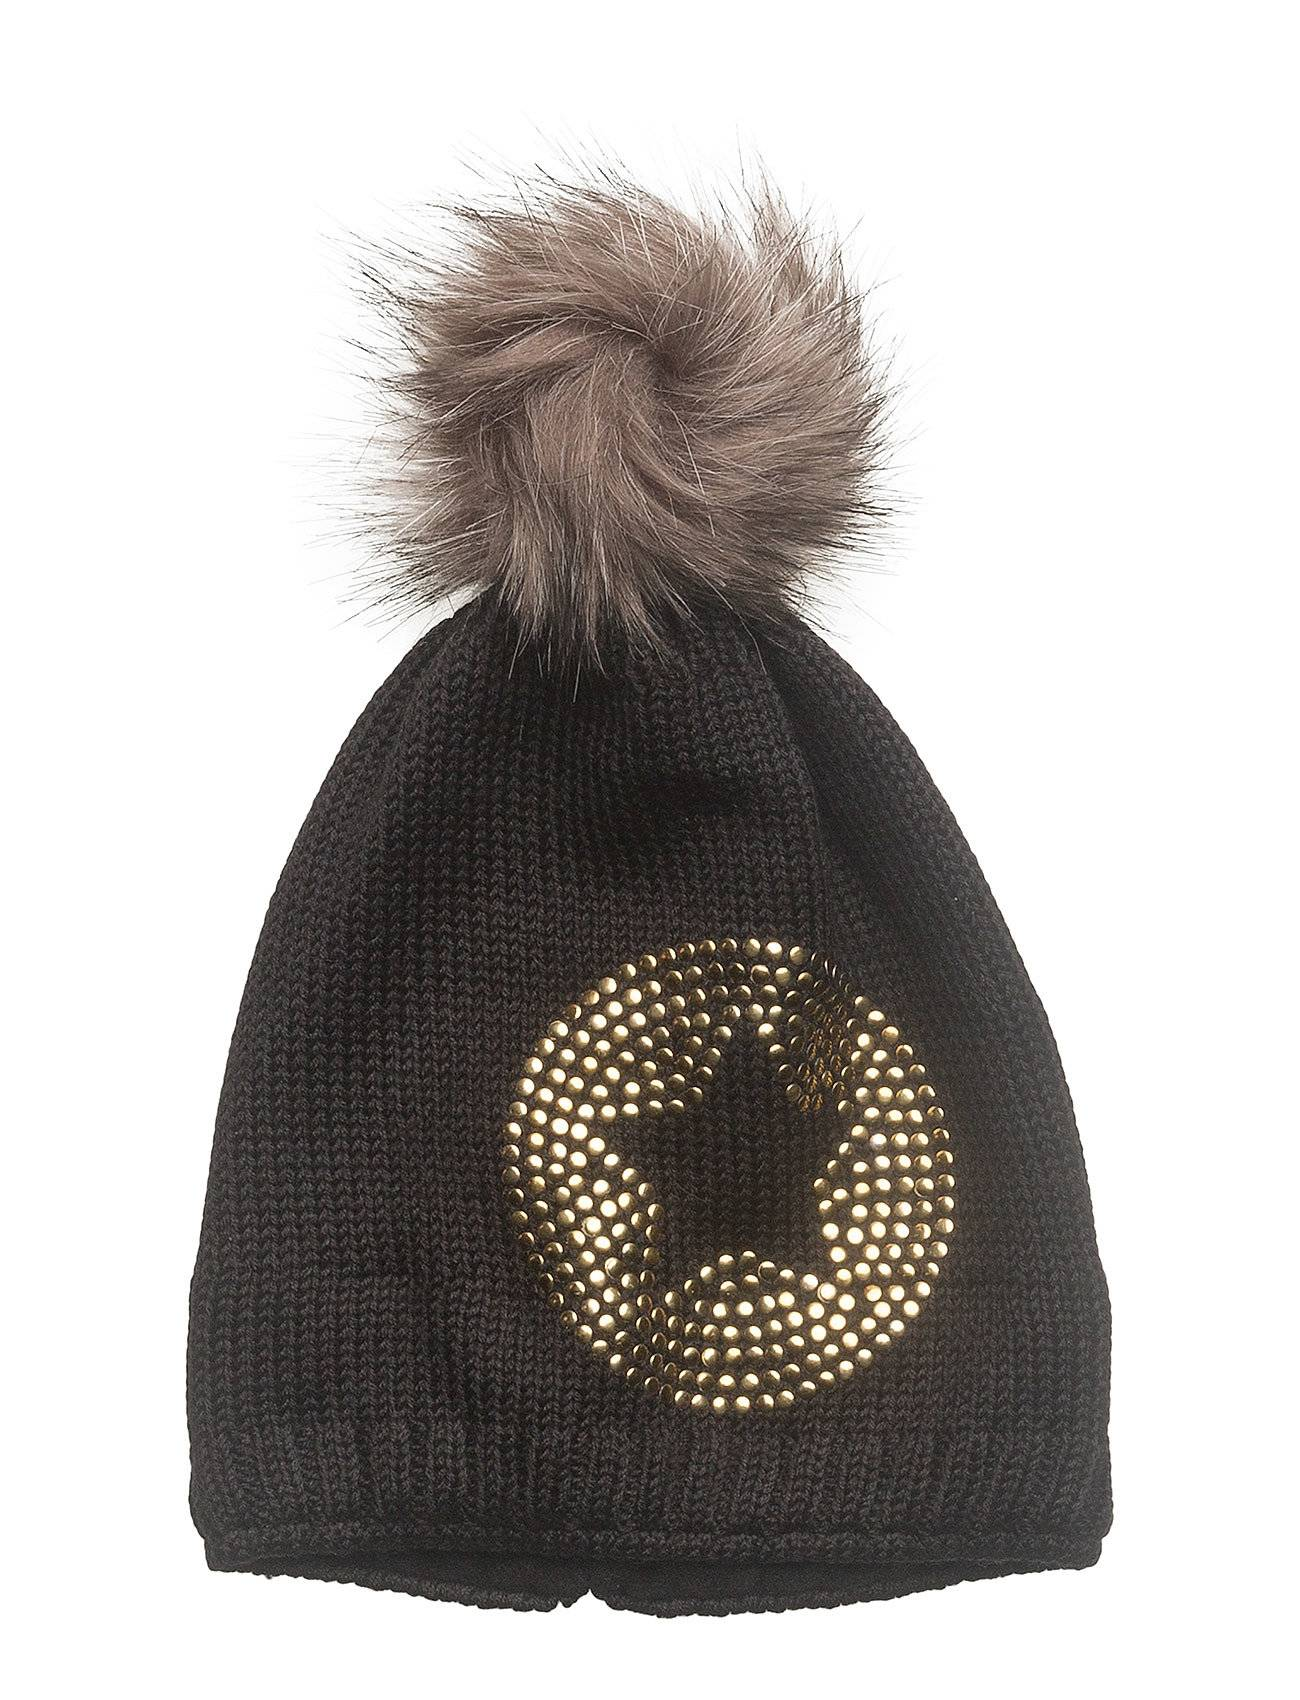 Ticket to Heaven Bobble Knit Hat